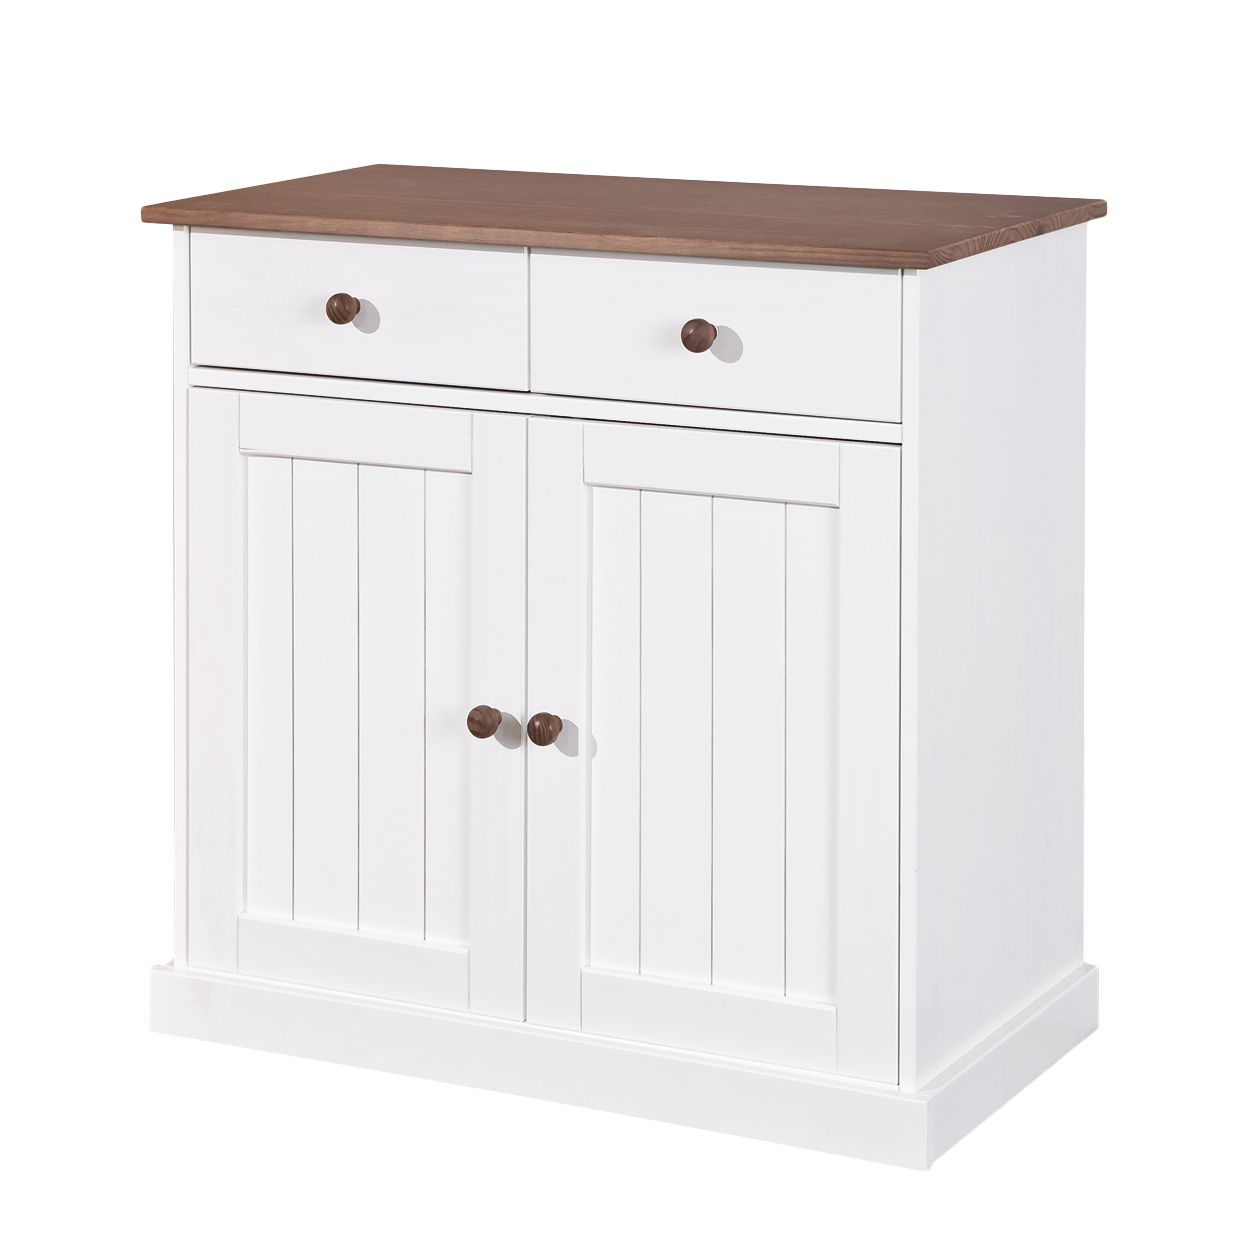 Sideboard Bad Bad Kommode Wei Best Badschrank Wei Hochglanz Kommode Bad